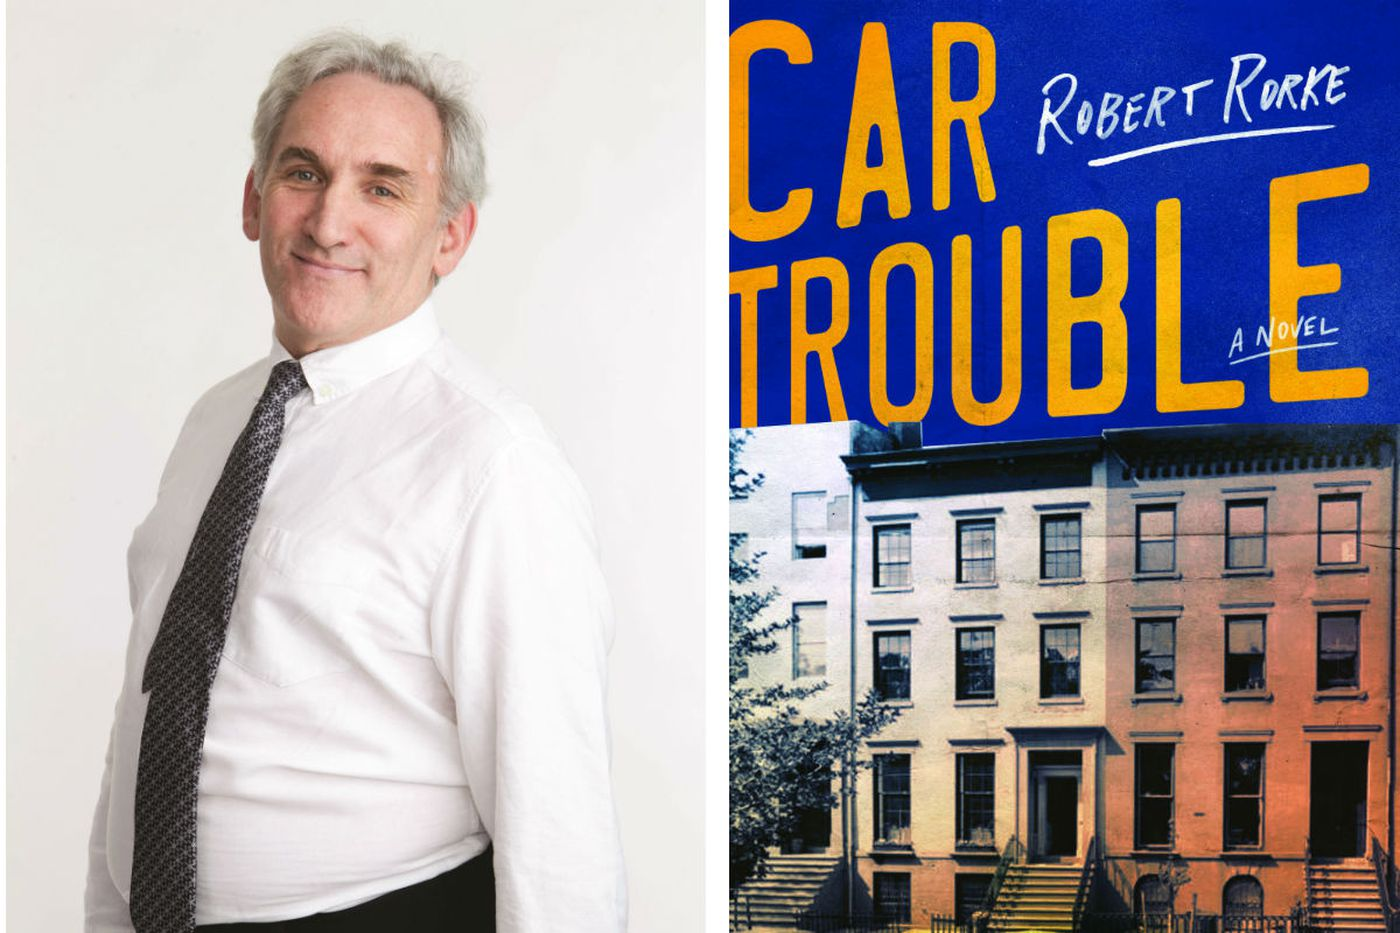 'Car Trouble' by Robert Rorke: A 1960s Irish-American family in Brooklyn, and the shadow of 'Himself'